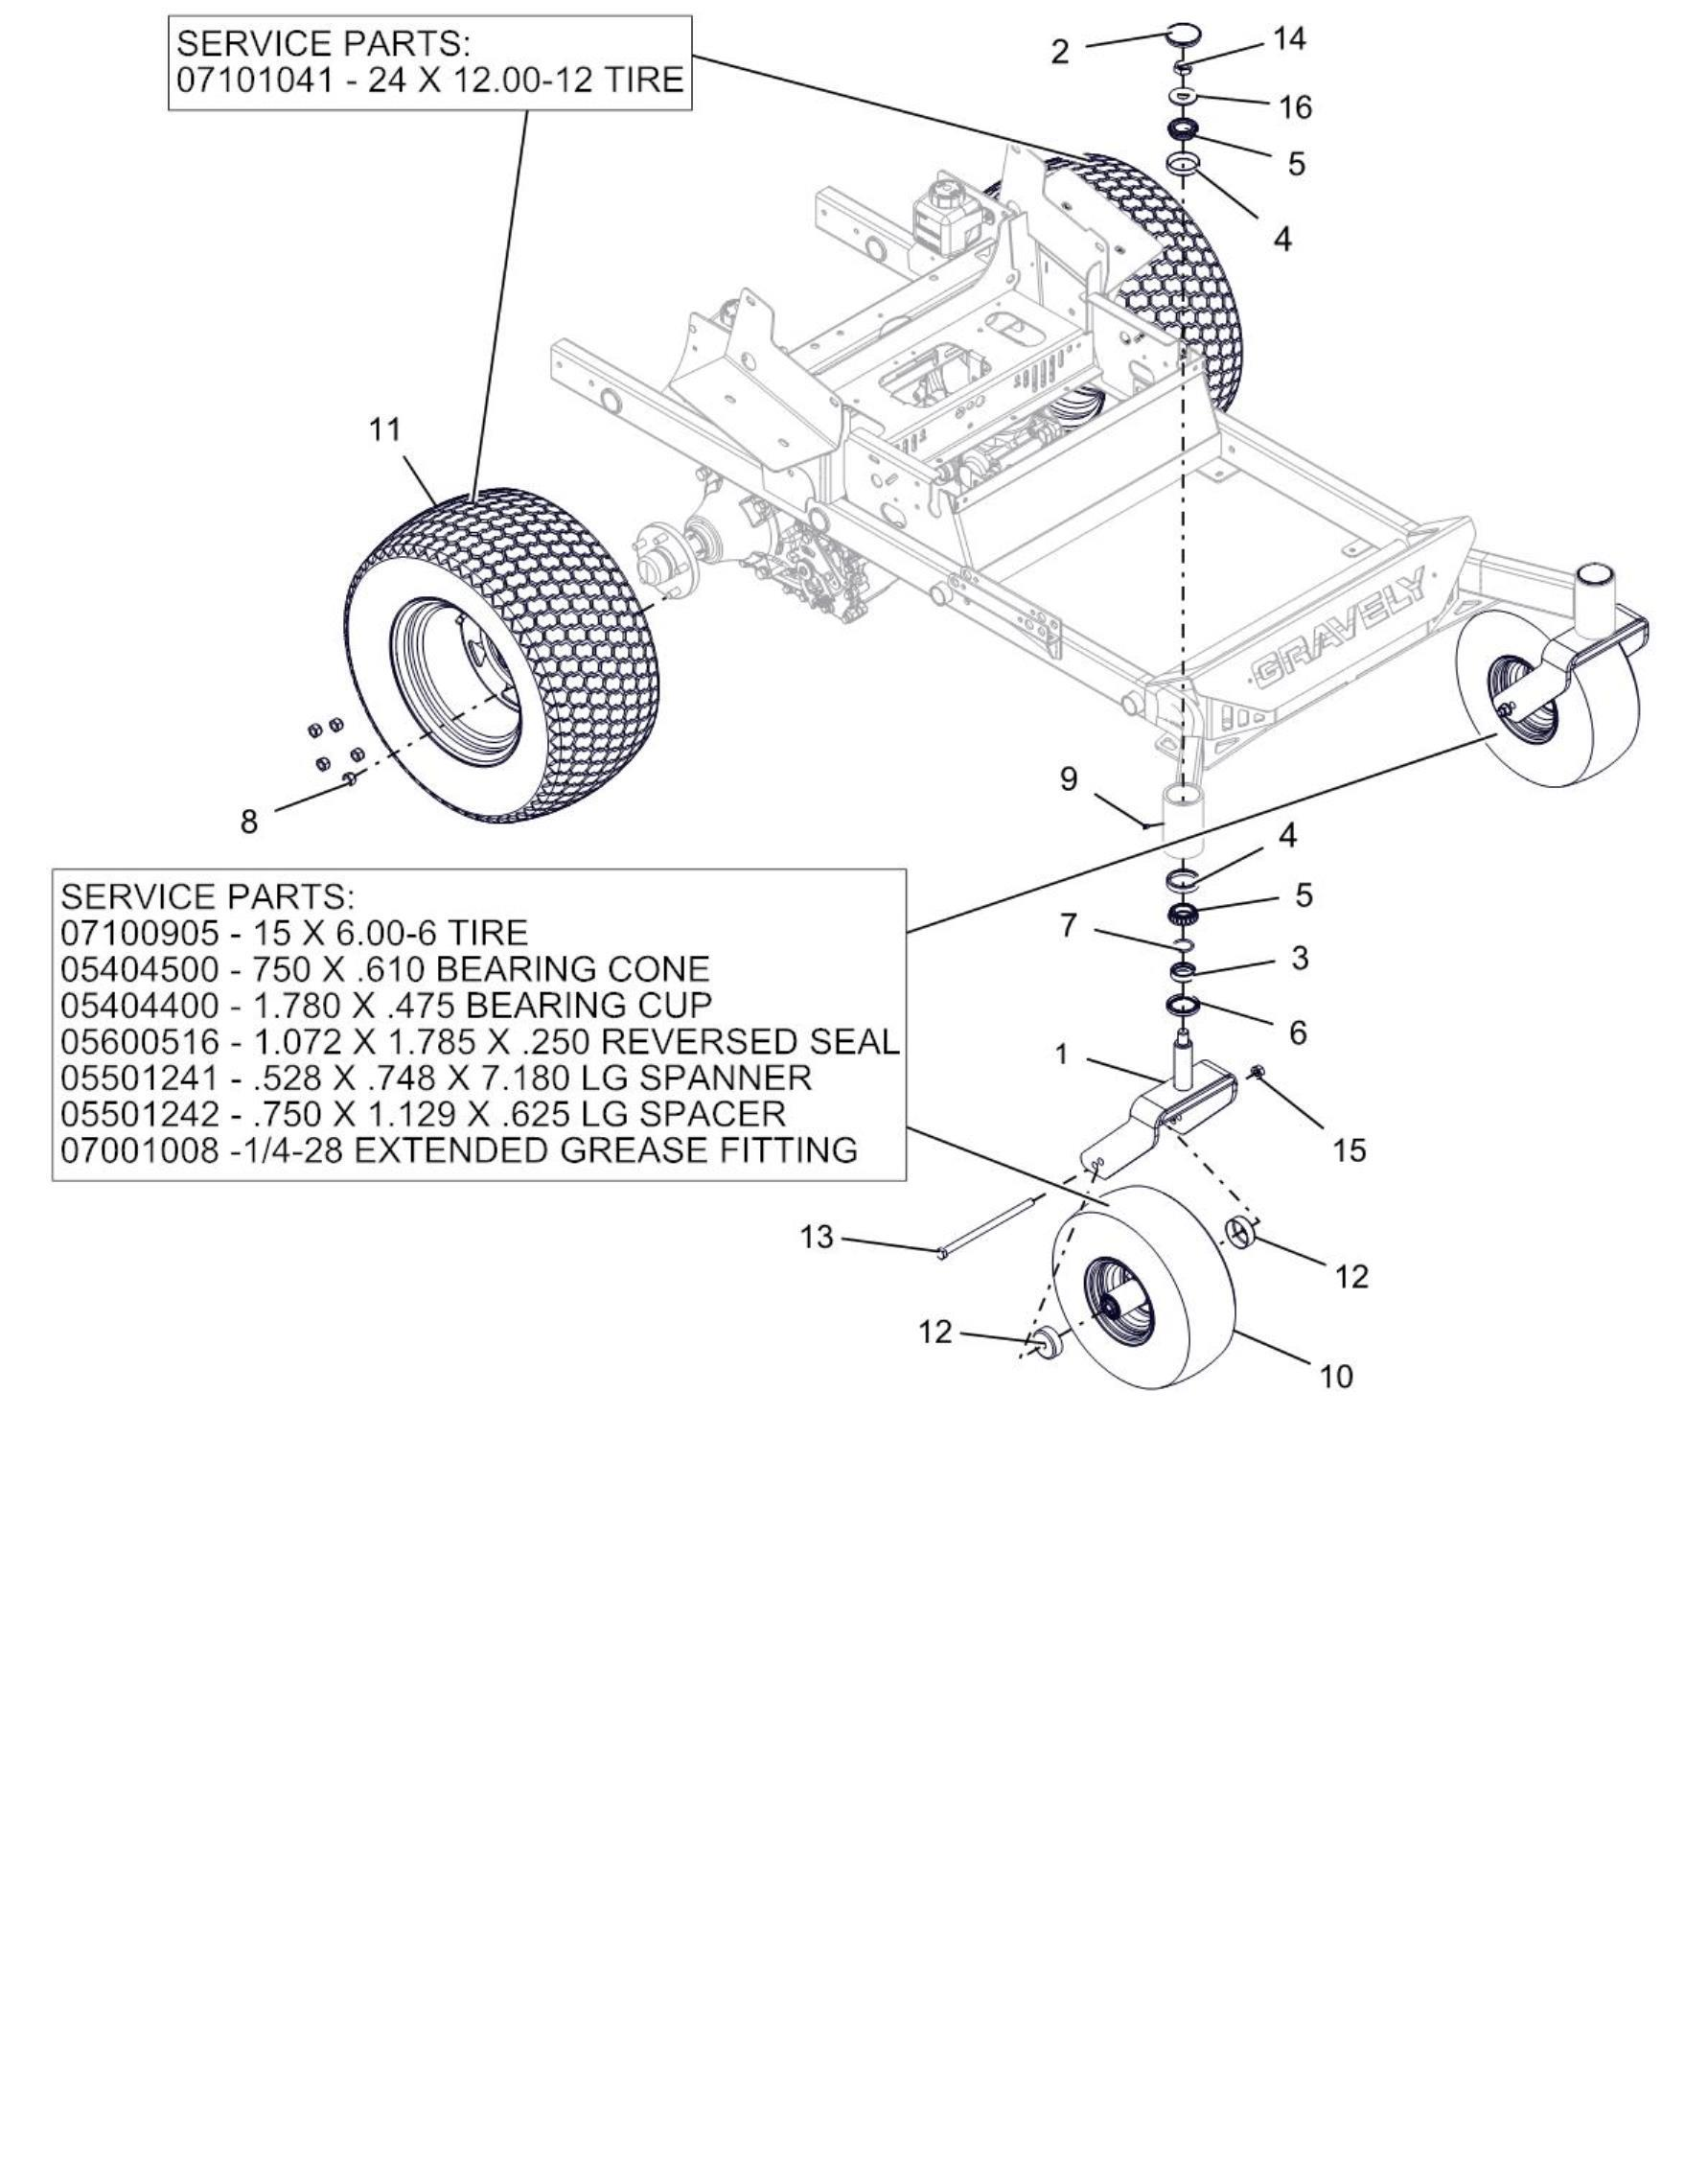 Casters And Tires